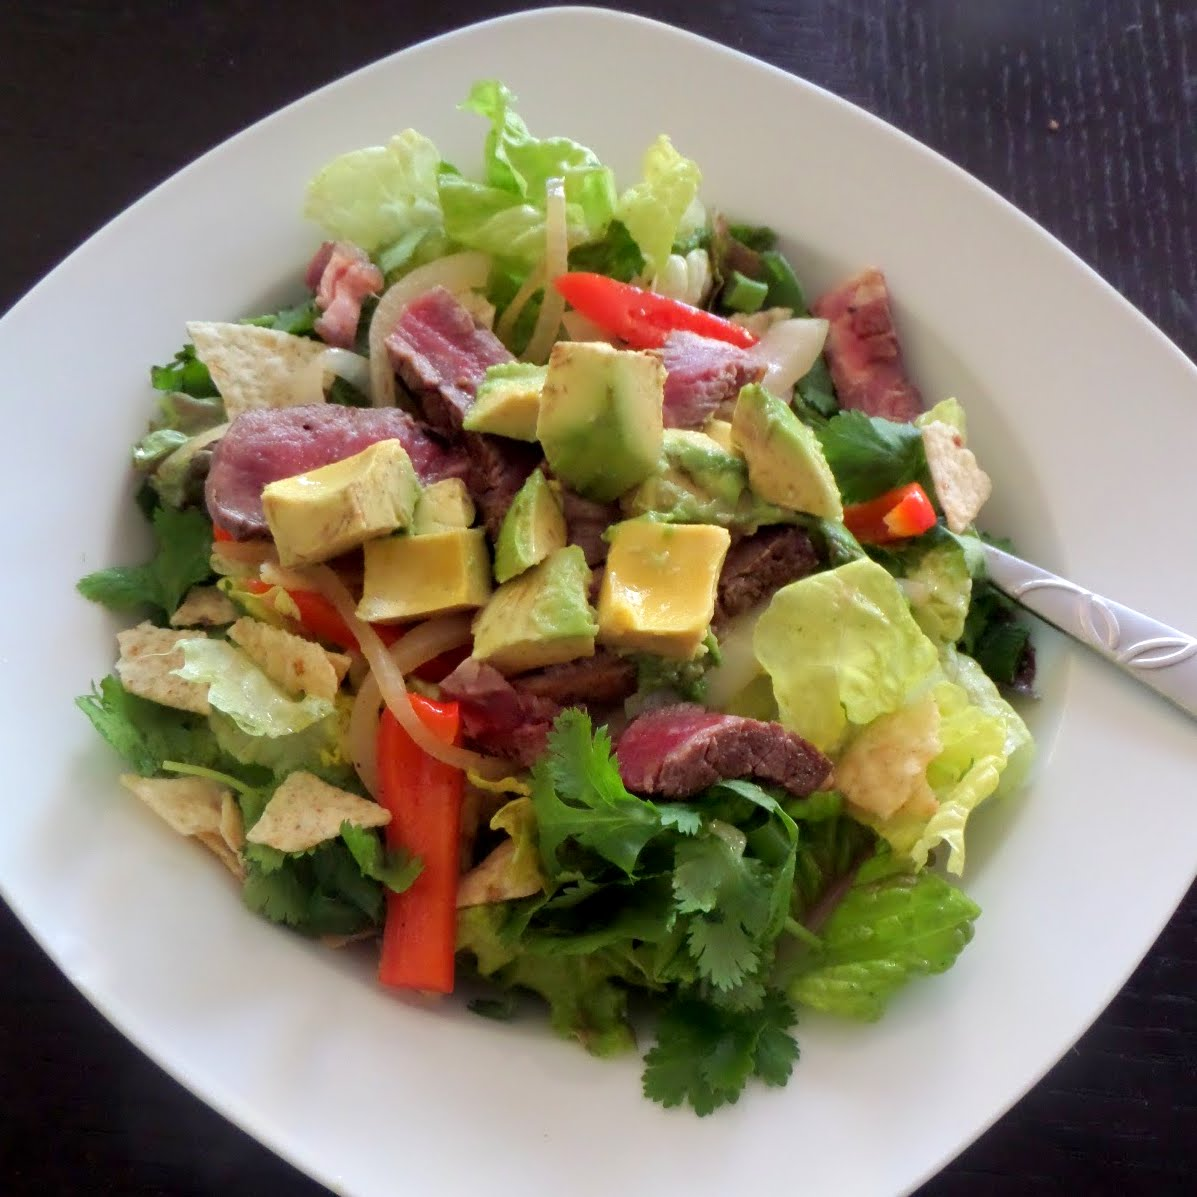 Steak Fajita Salad:  A green salad topped with sauteed pepper, onion, and leftover steak slices.  Also, avocado, cilantro, and crushed tortilla chips.